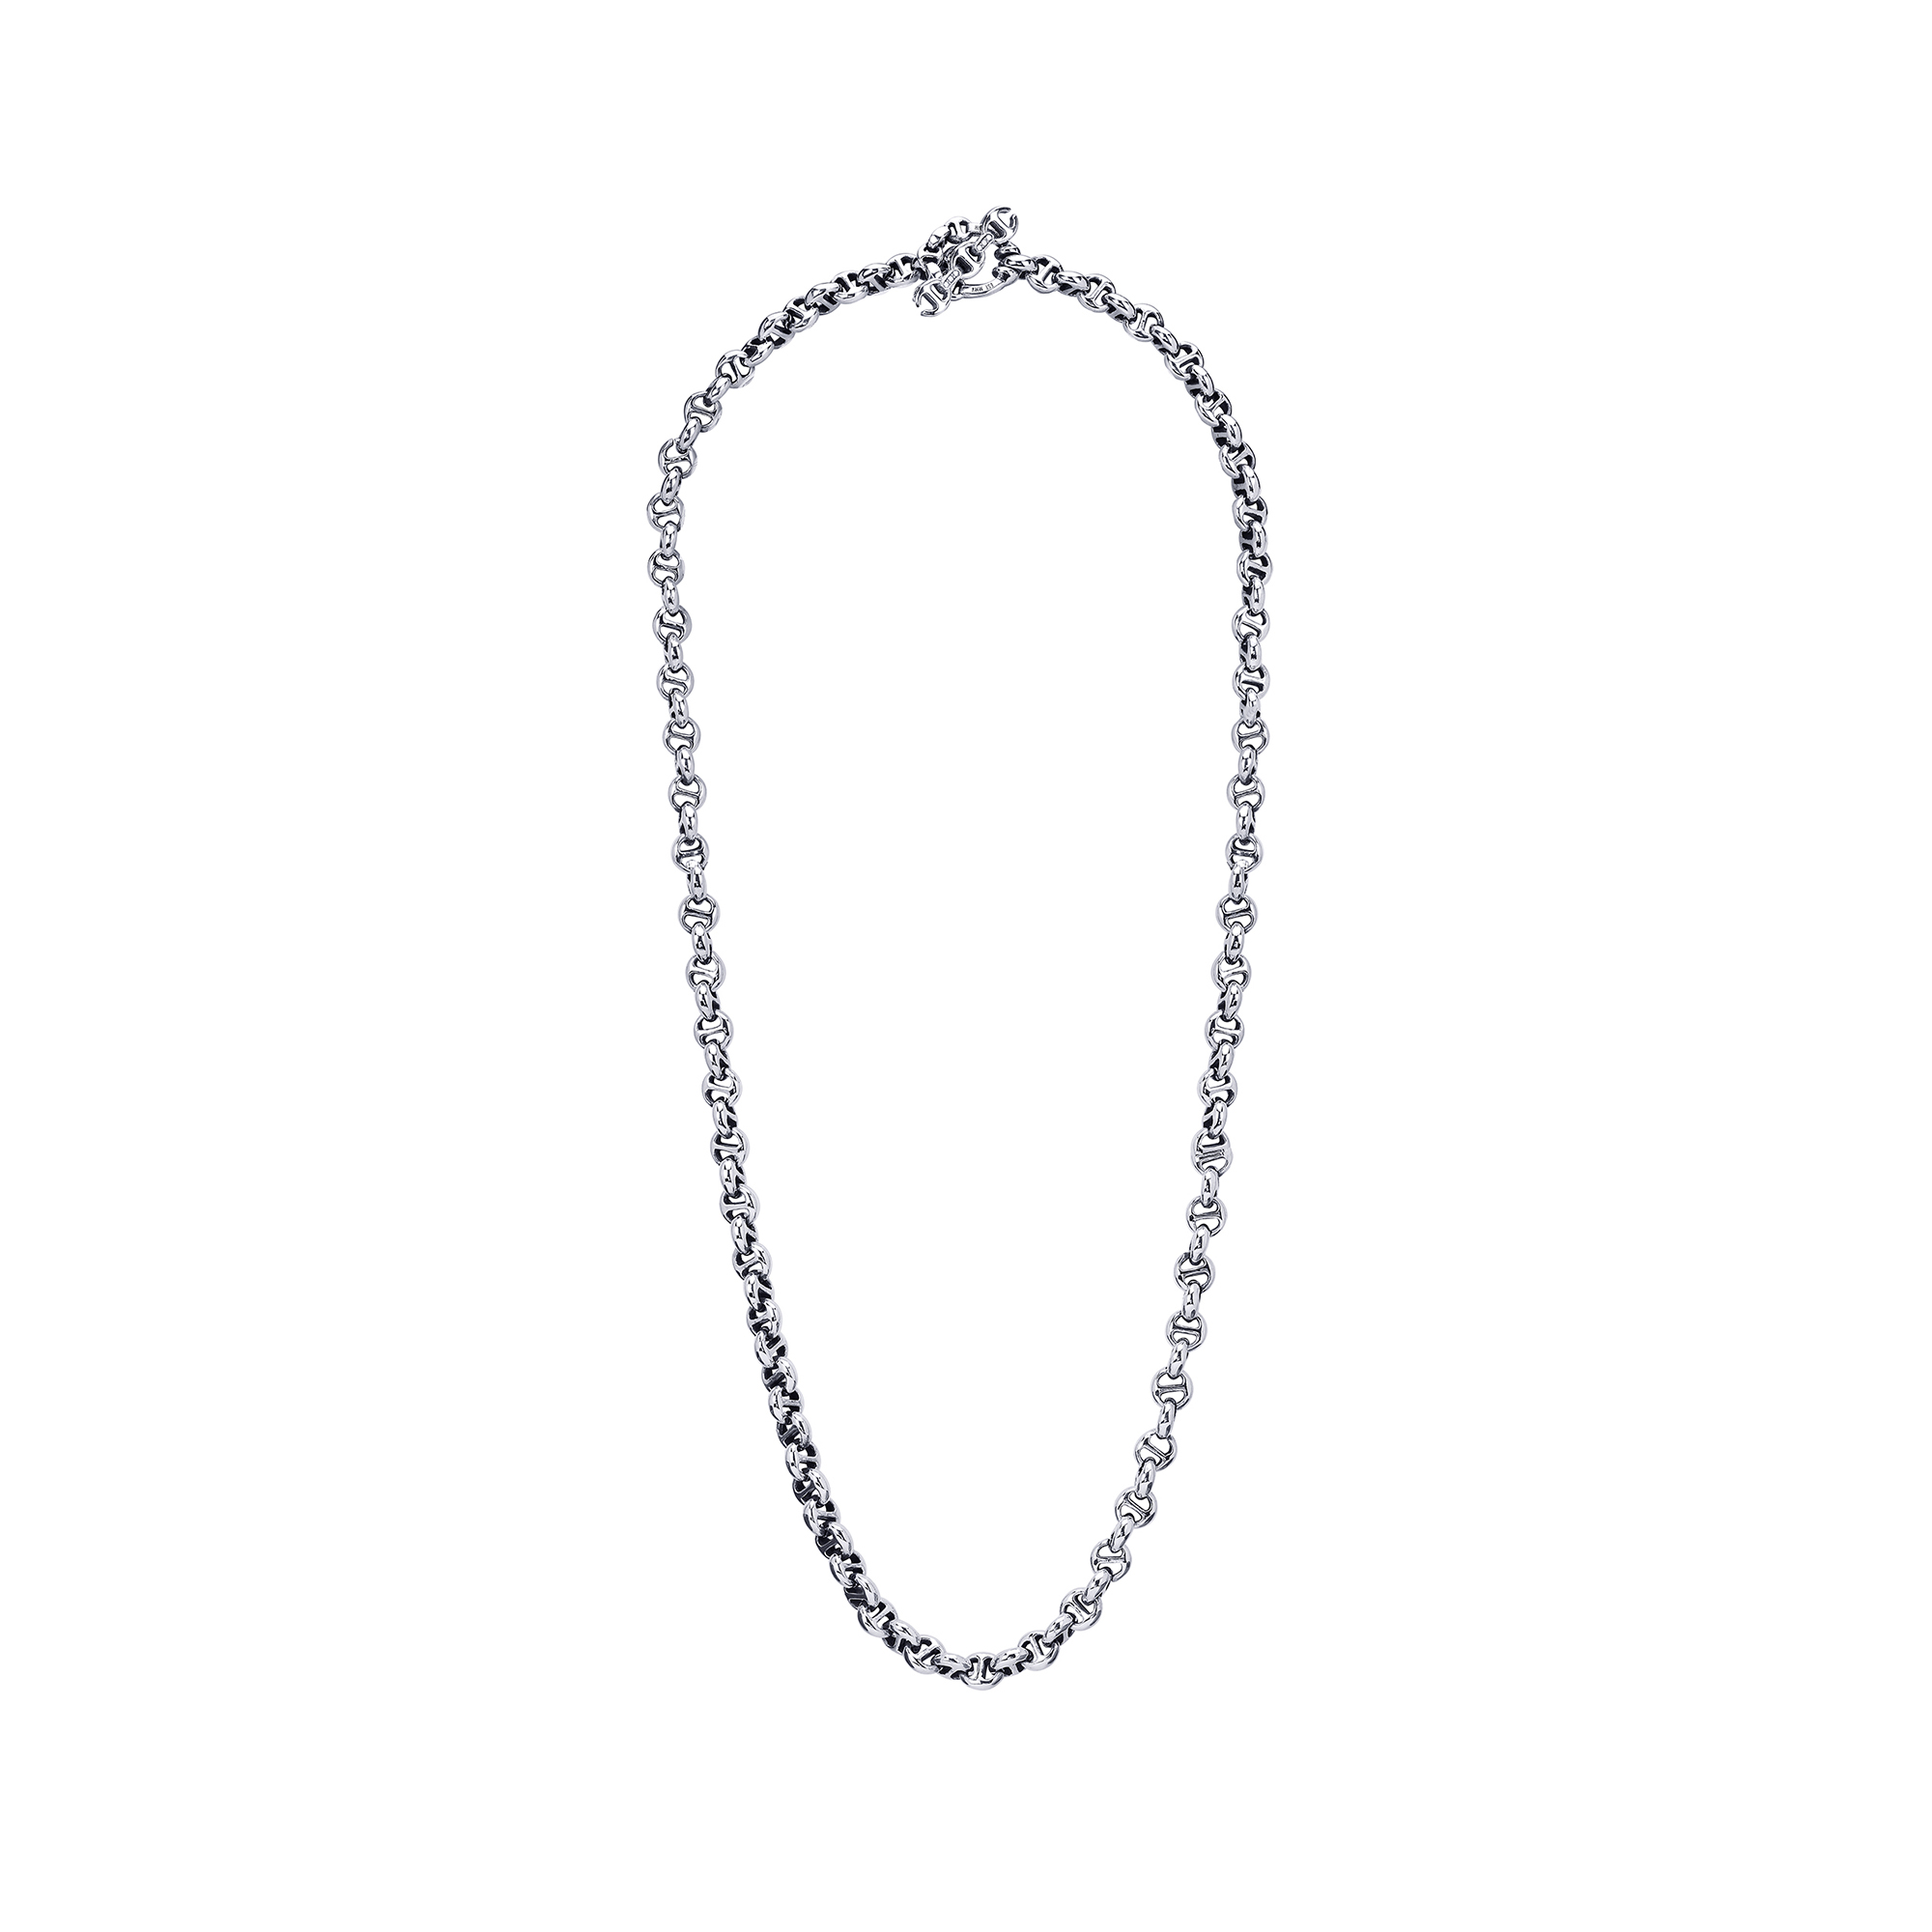 20inchi 5MM OPEN-LINK NECKLACE